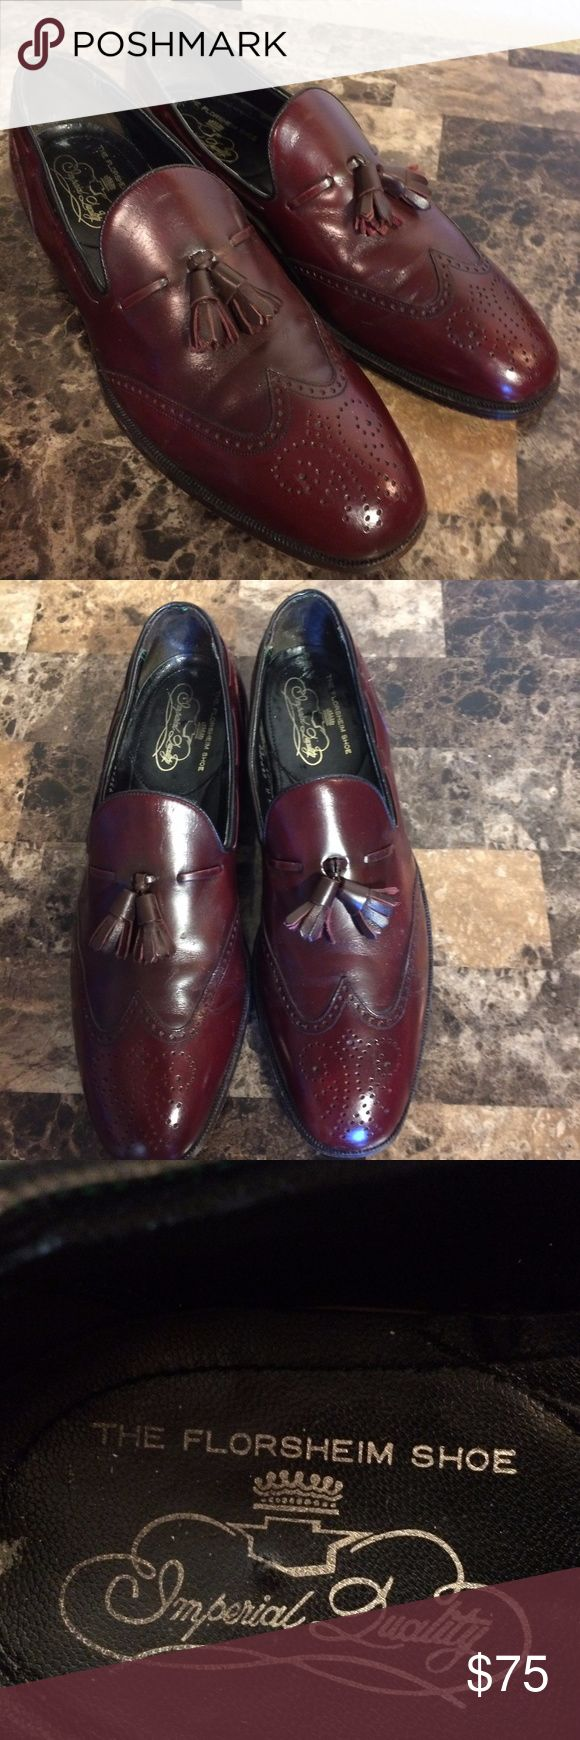 Vtg Florsheim Imperial Stuart Tassel Wingtip Shoes Vtg Florsheim Imperial Stuart Tassel Wingtip Loafers Bordeaux Leather sz 11.5 A   Great pre-owned condition!  Please see all photos!!  Vintage 80's Tassel Wingtips.  Model 93223 - Hard to Find Florsheim Shoes Loafers & Slip-Ons